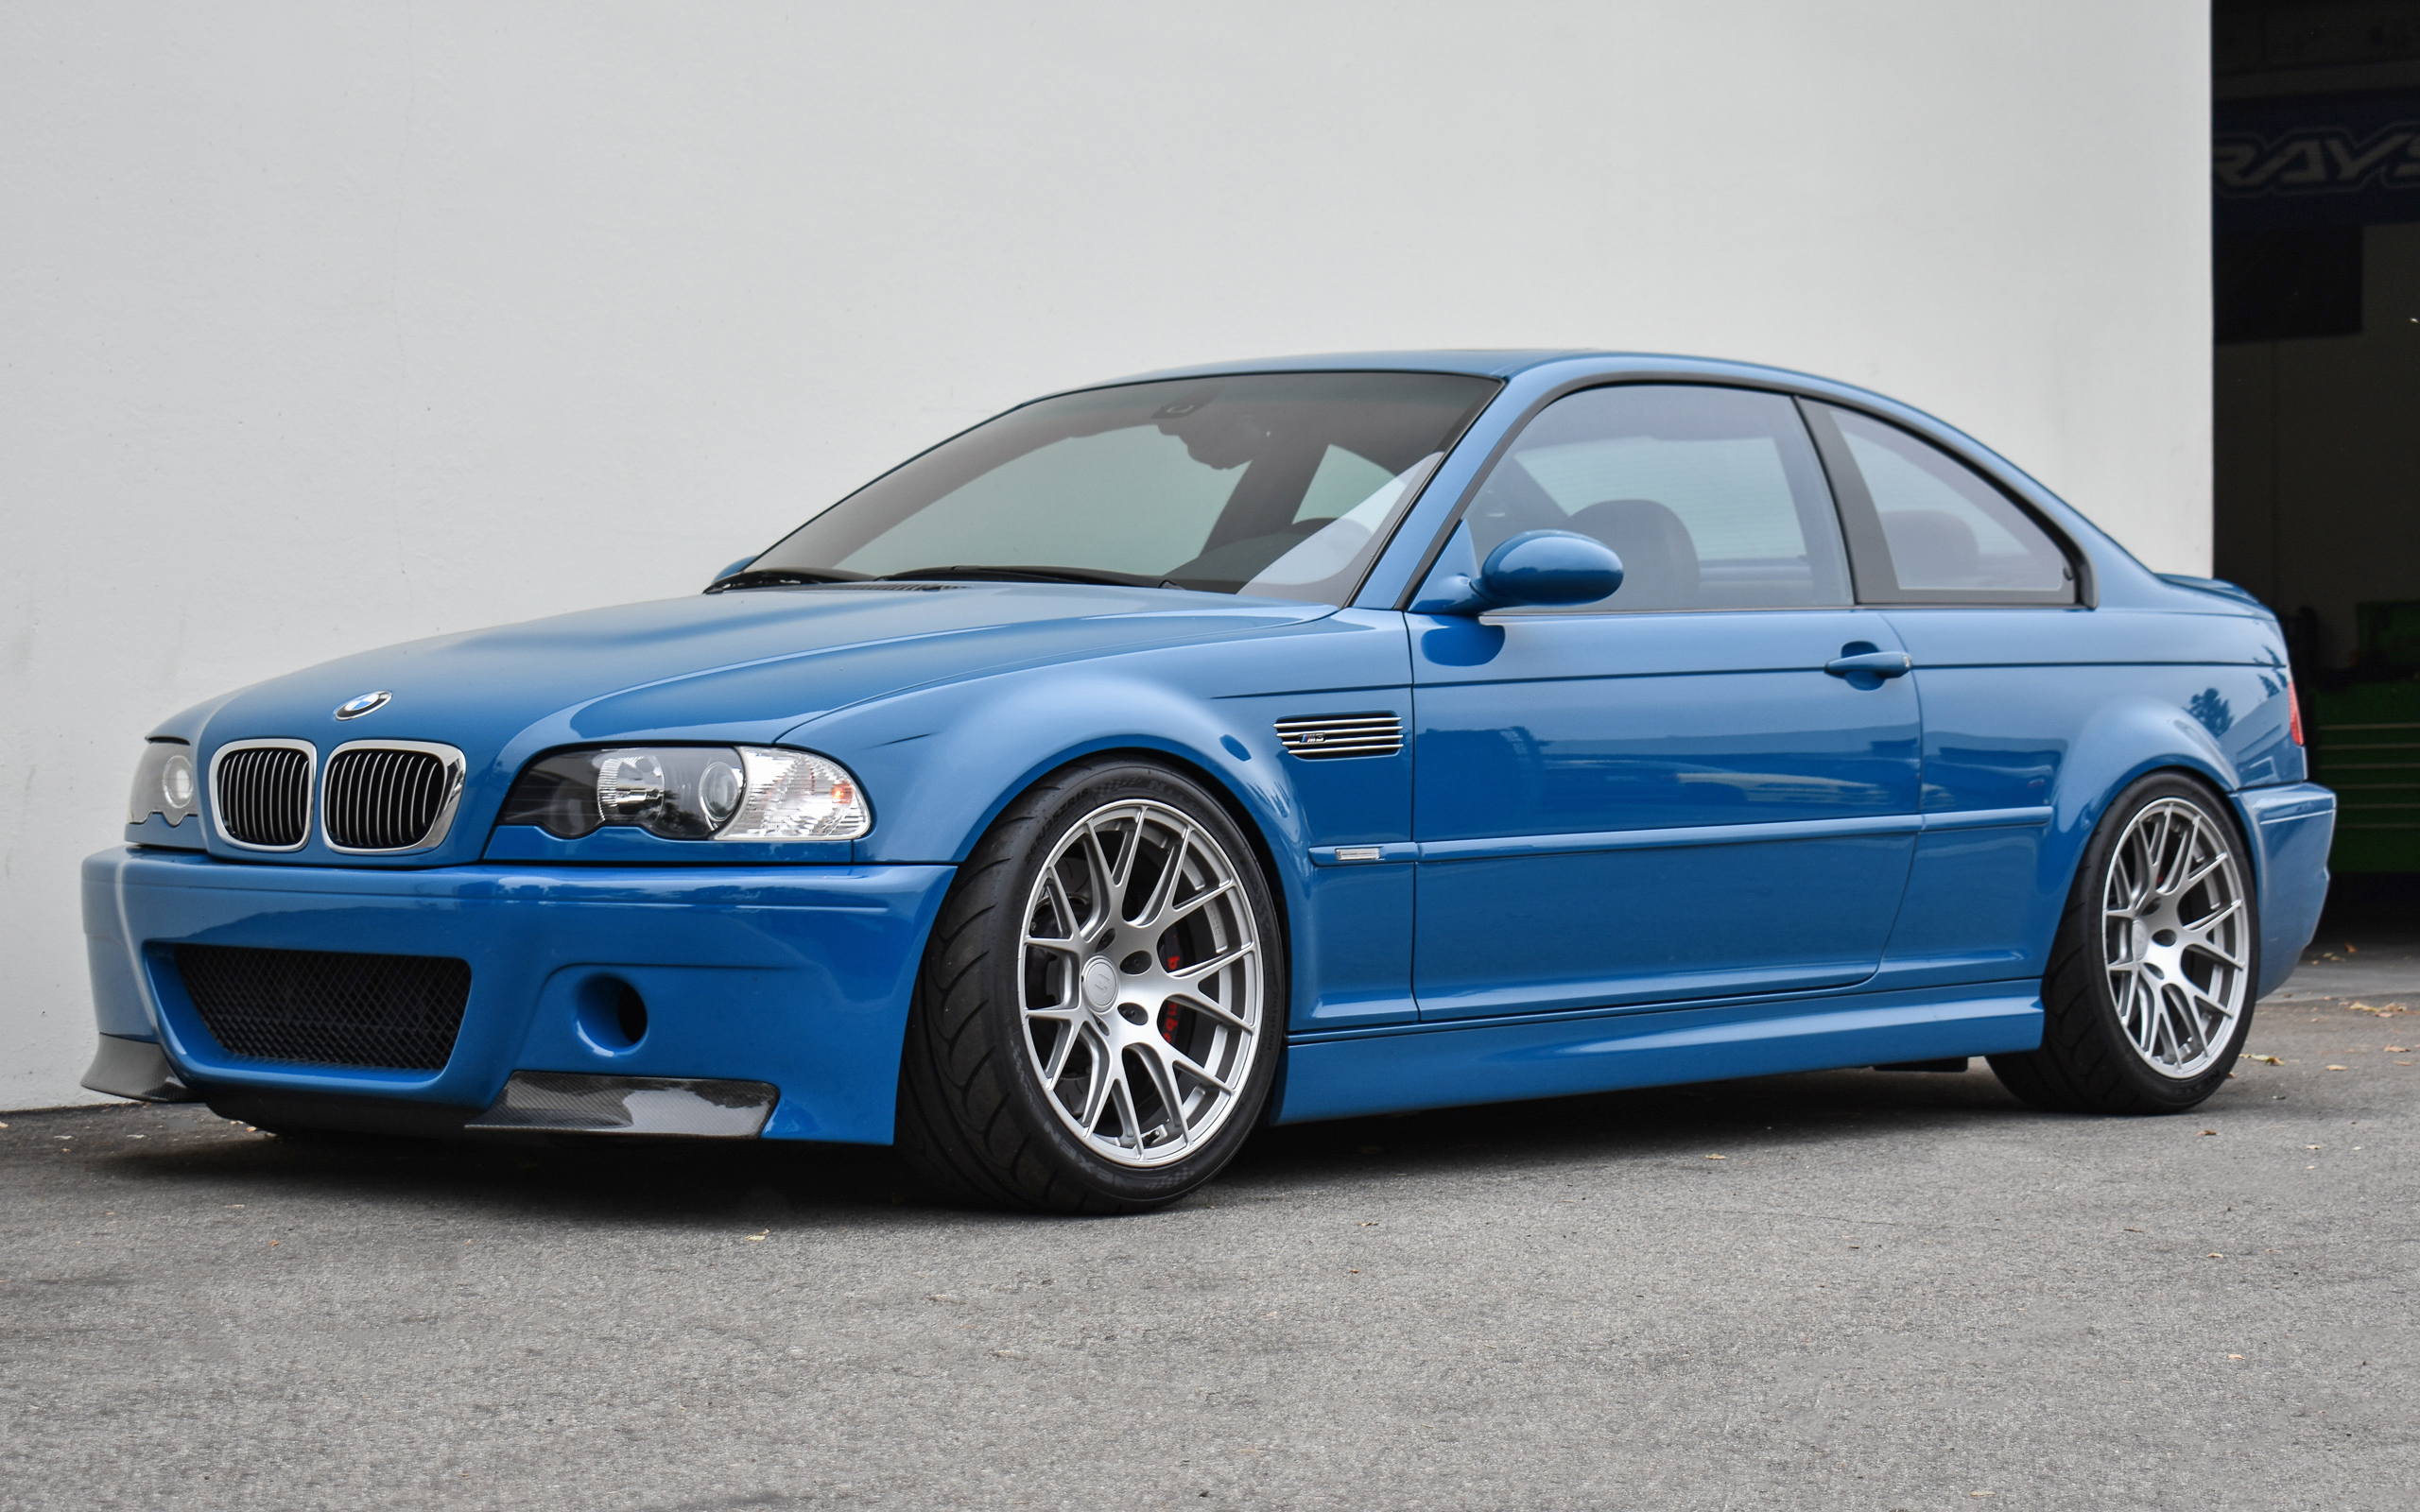 Laguna Seca Blue E46 M3 Ast 5100 Titan7 T S7 Bmw Performance Parts Services